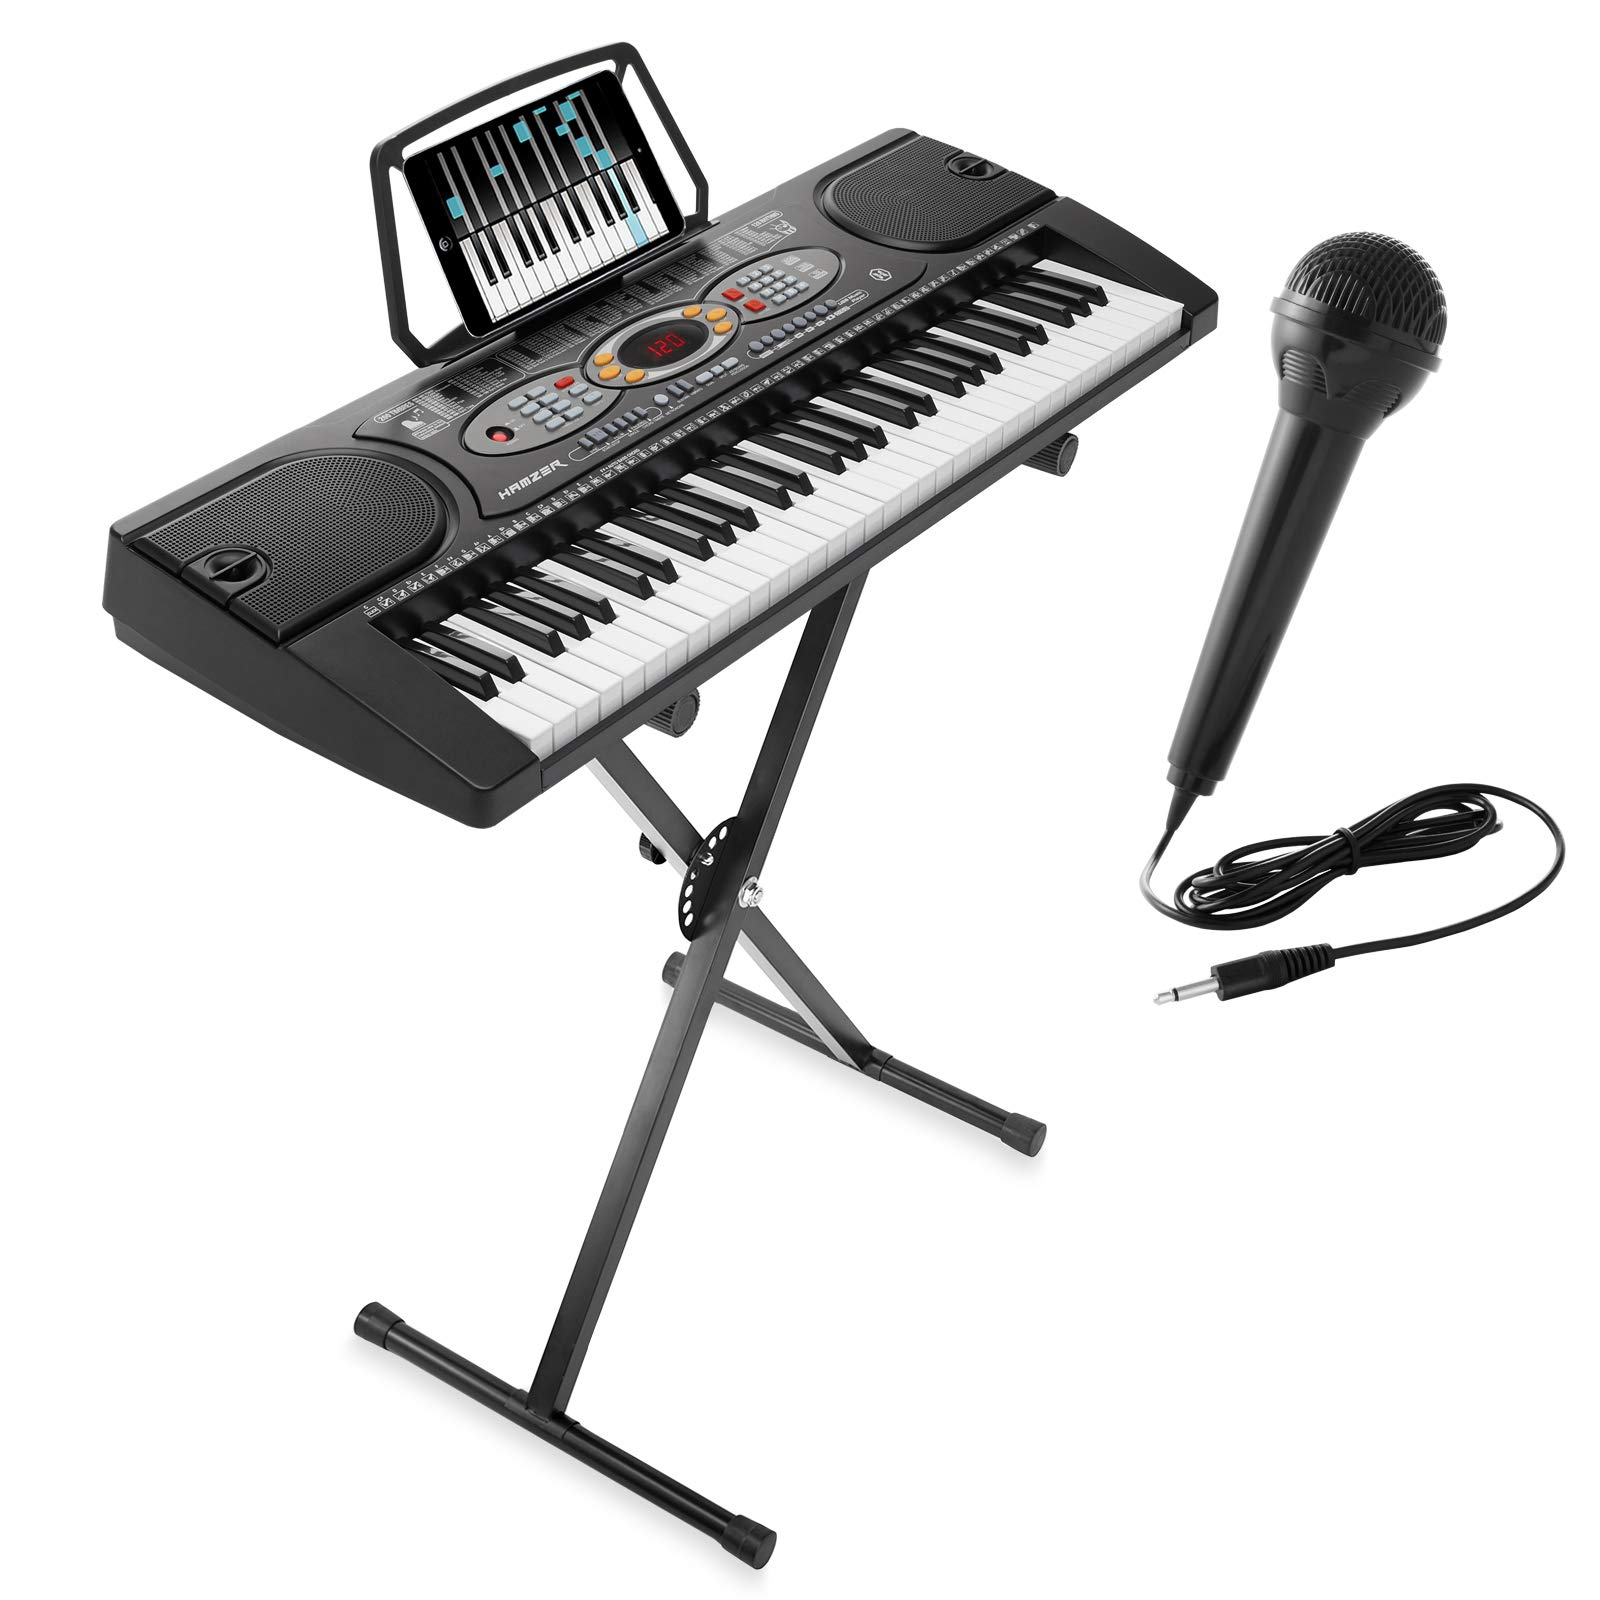 Hamzer 61-Key Electronic Keyboard Portable Digital Music Piano with X Stand, Microphone & Sticker Set by Hamzer